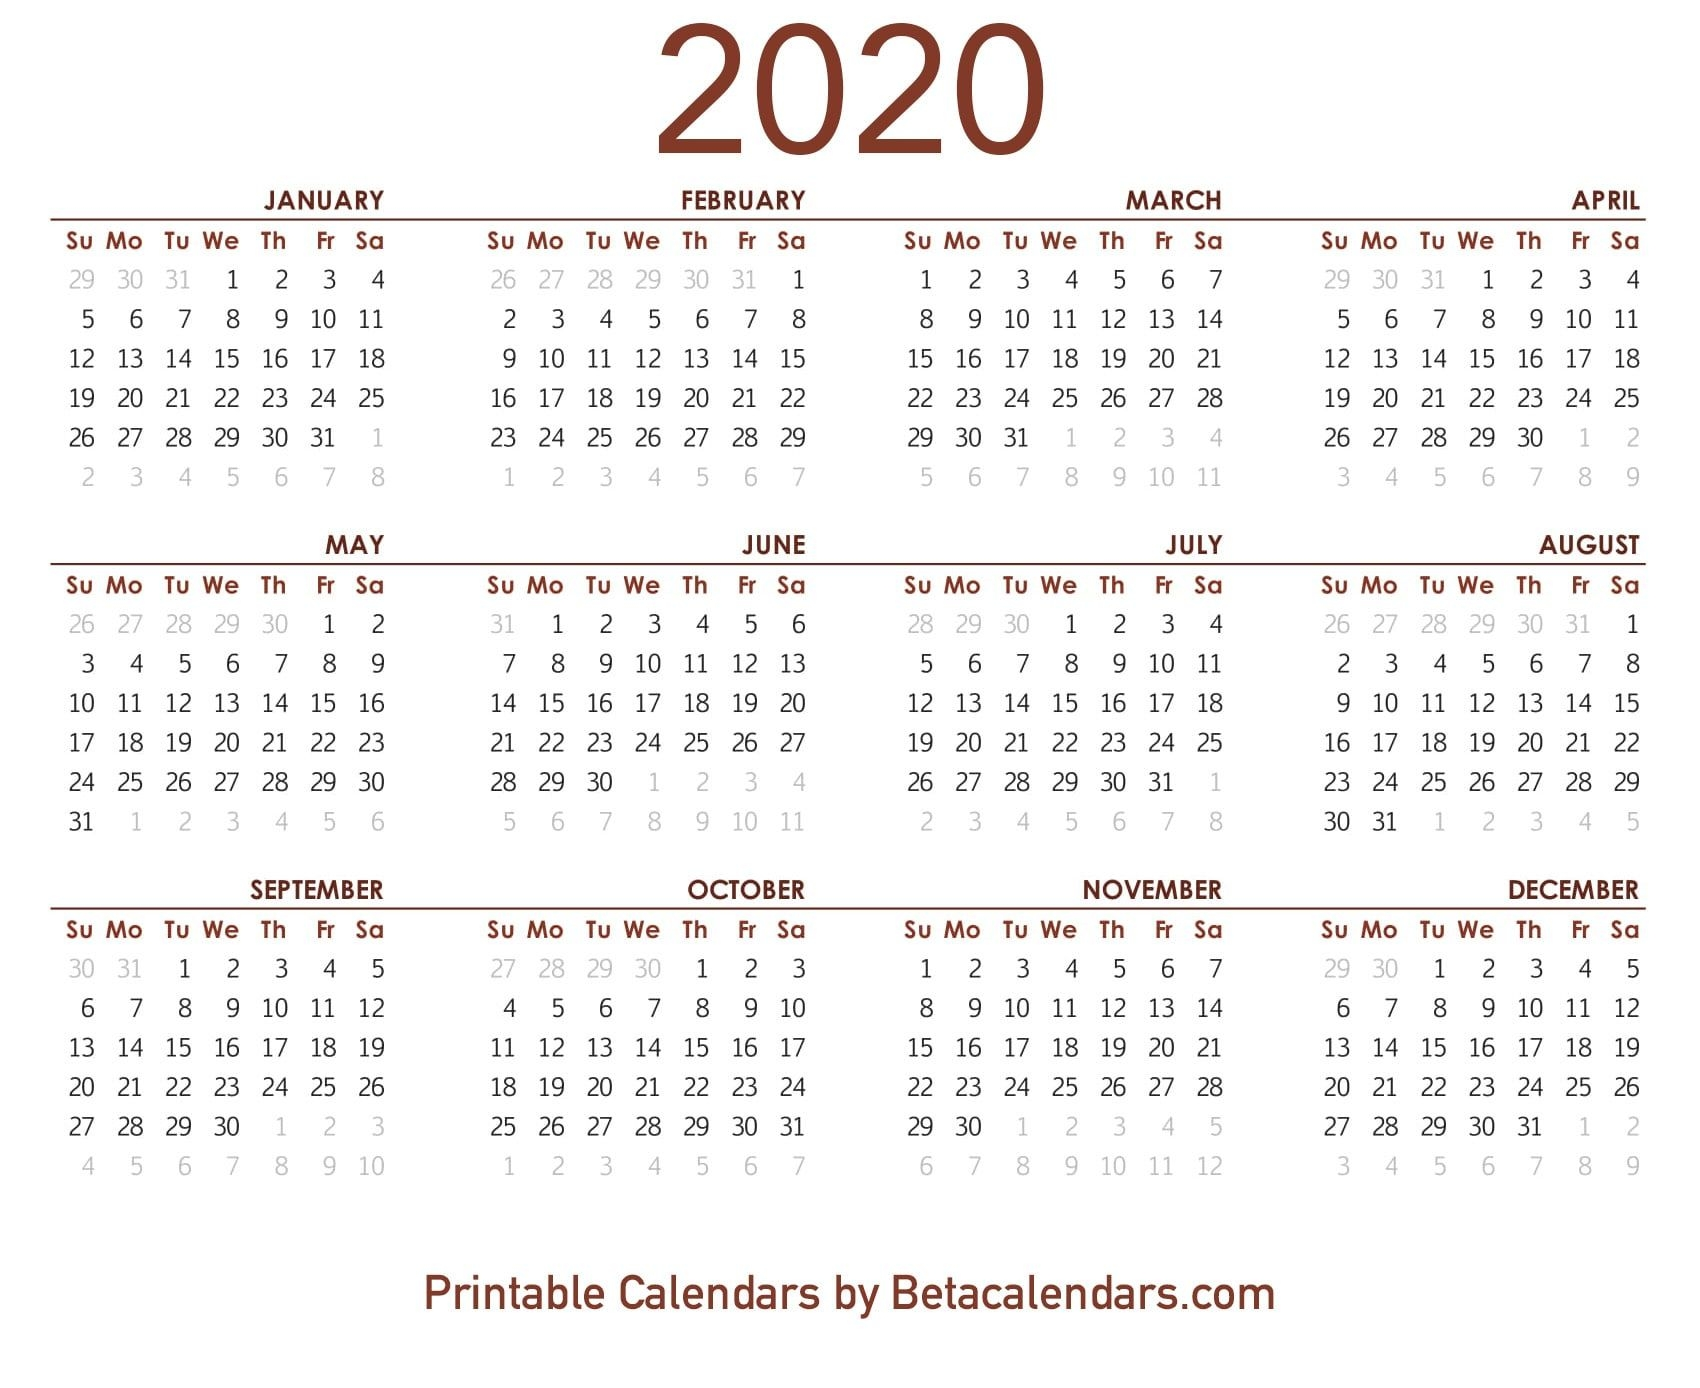 2020 calendar free printable yearly calendar 2020